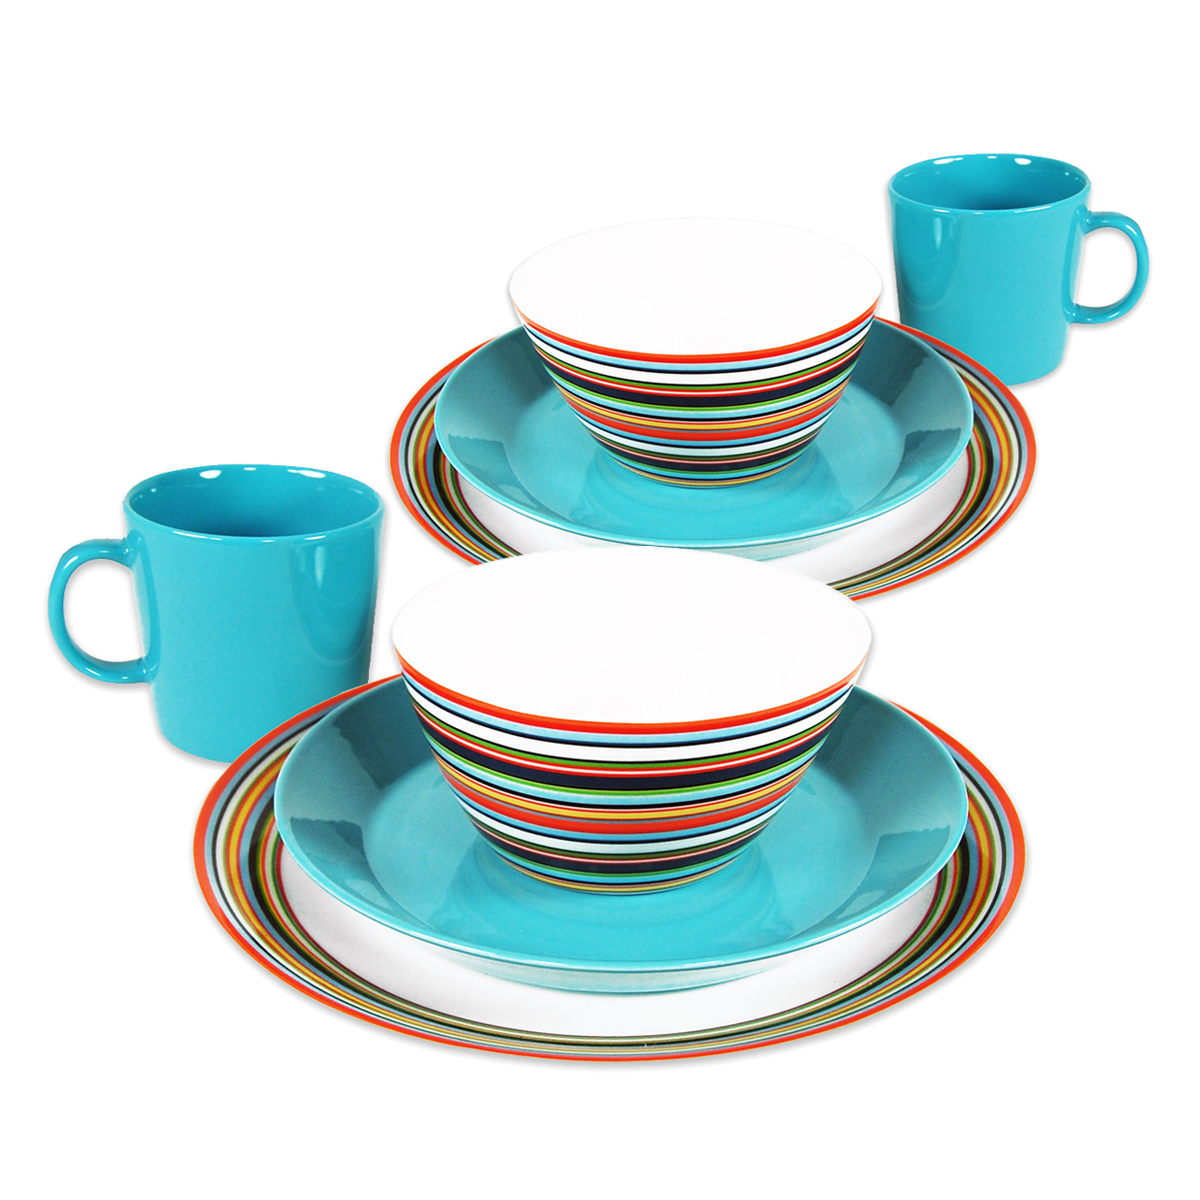 iittala origo teema place setting for two iittala teema turquoise dinnerware. Black Bedroom Furniture Sets. Home Design Ideas